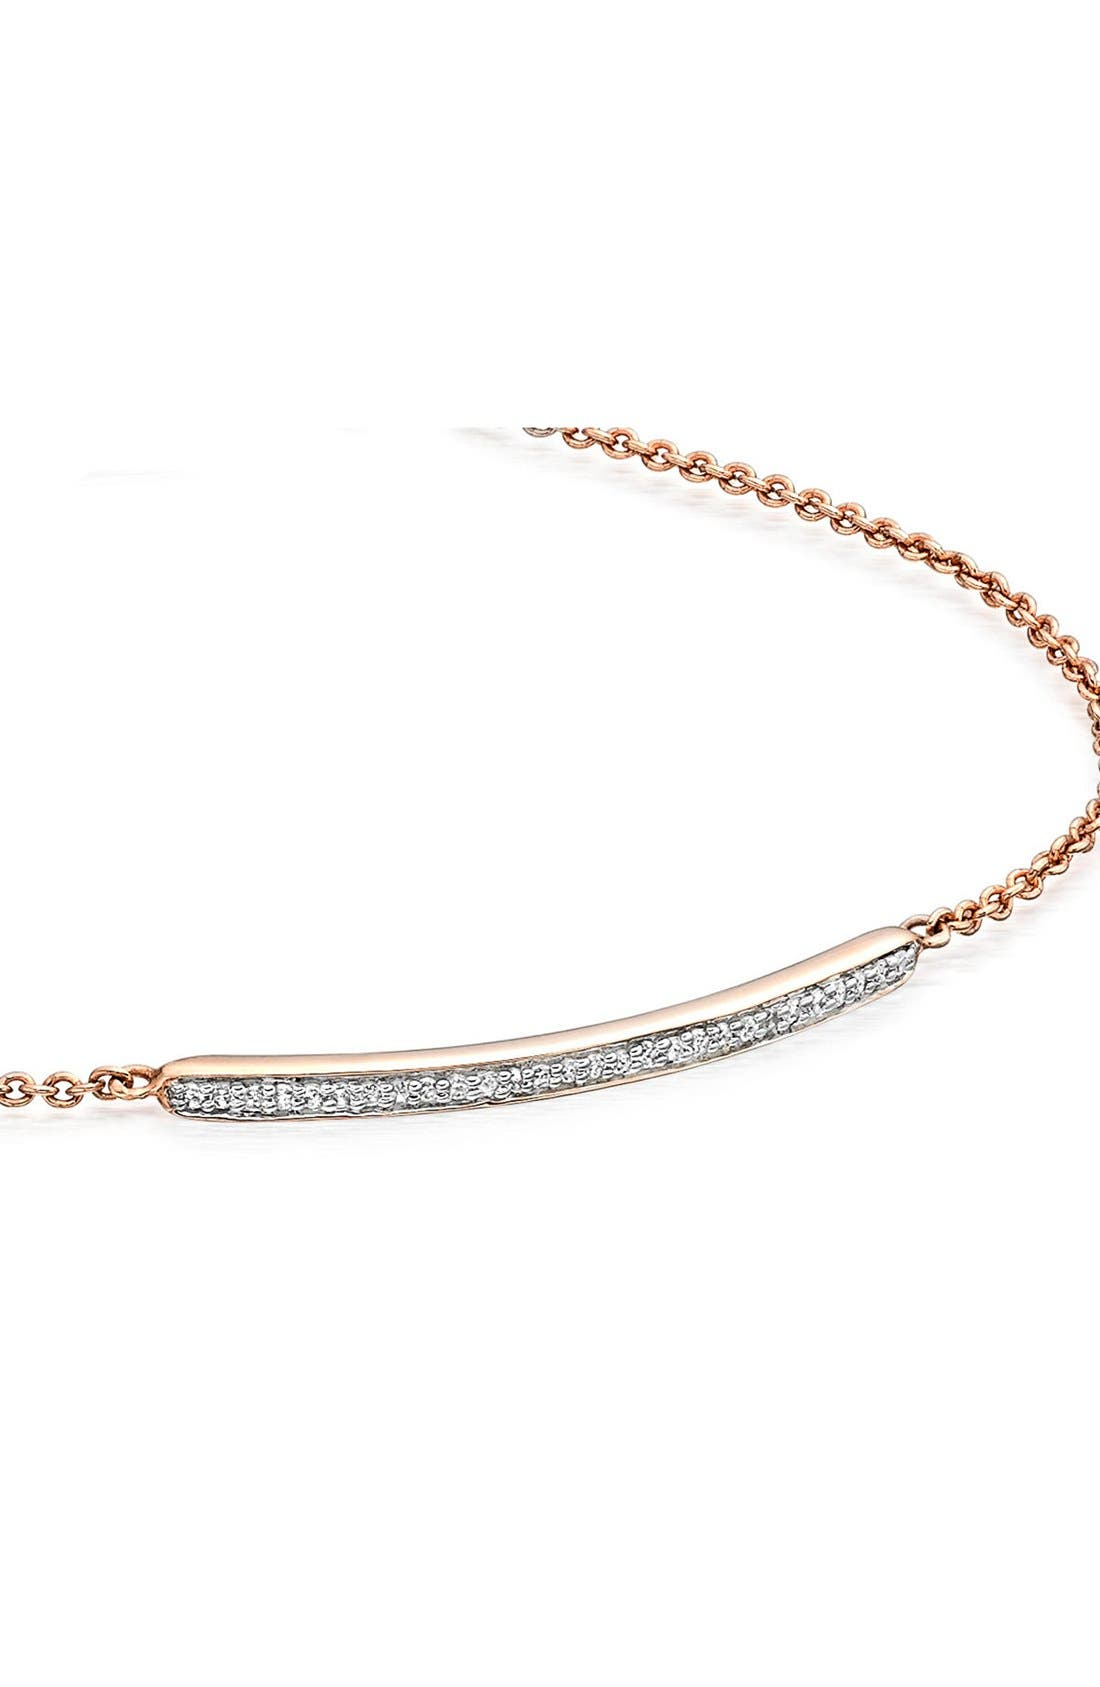 'Skinny' Diamond Bracelet,                             Alternate thumbnail 2, color,                             ROSE GOLD